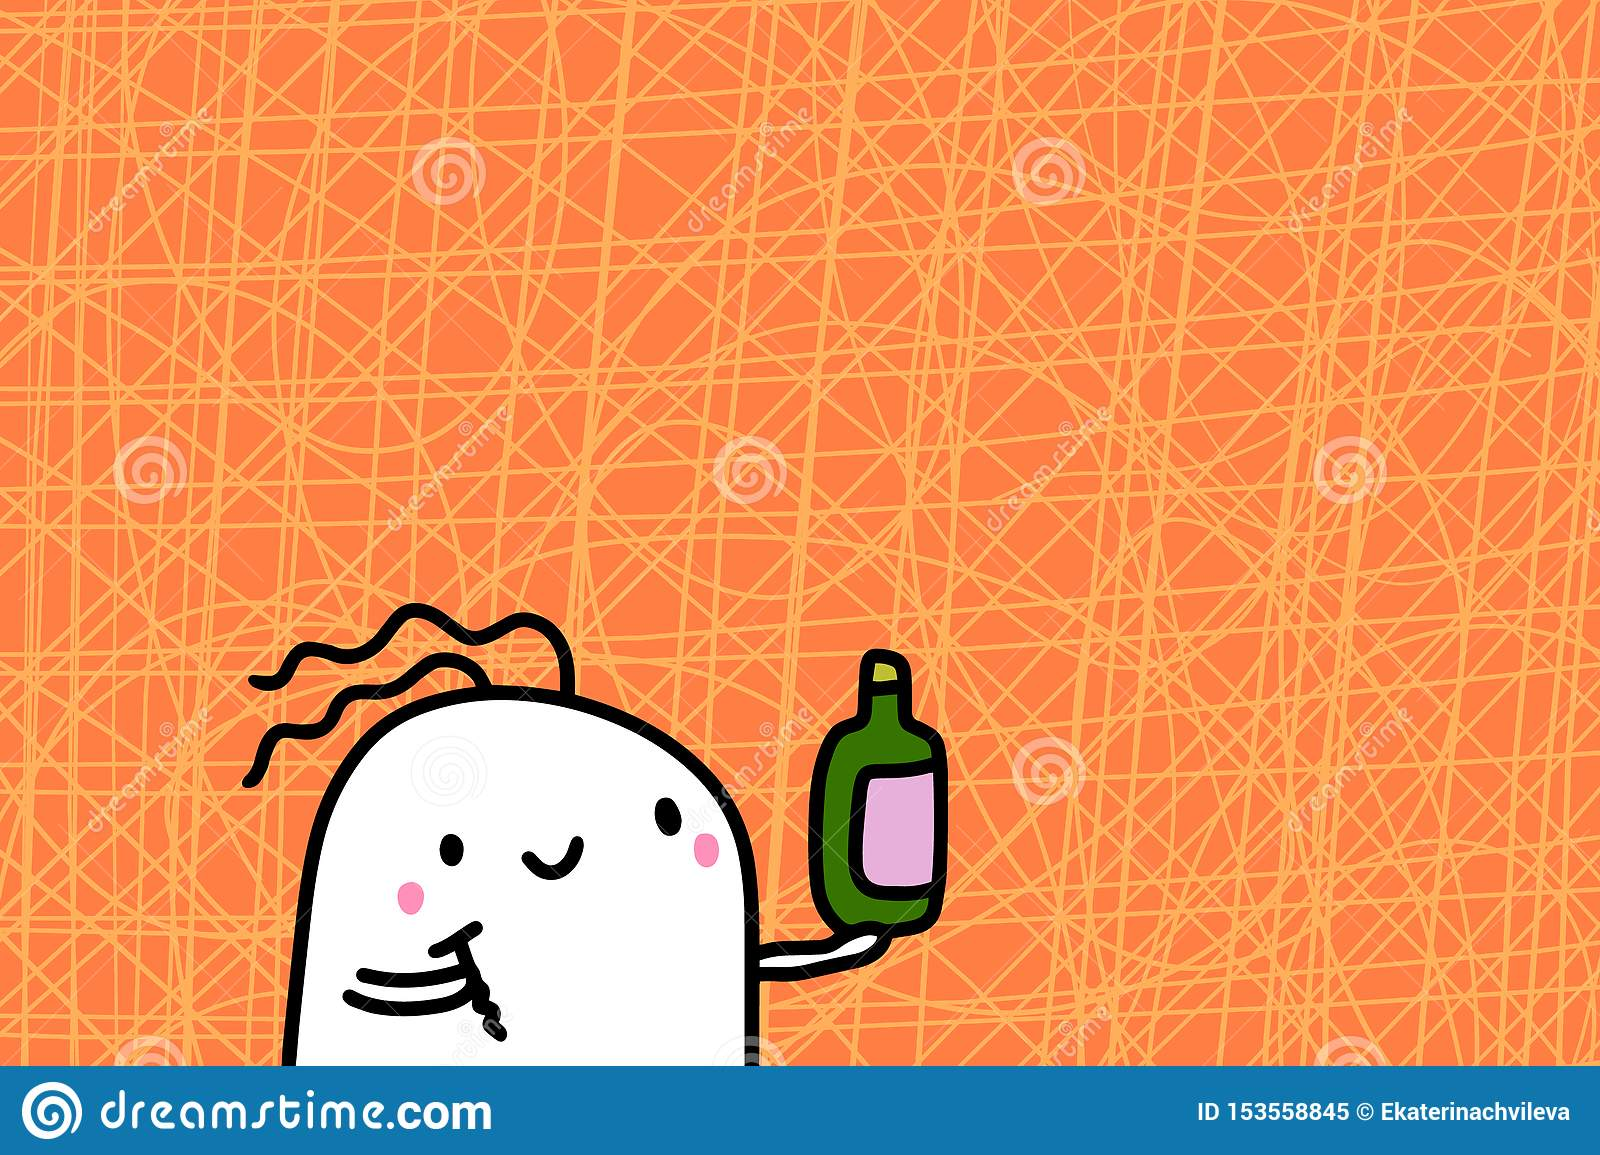 Cute cartoon man holding bottle and corkscrew hand drawn vector illustration on textured background